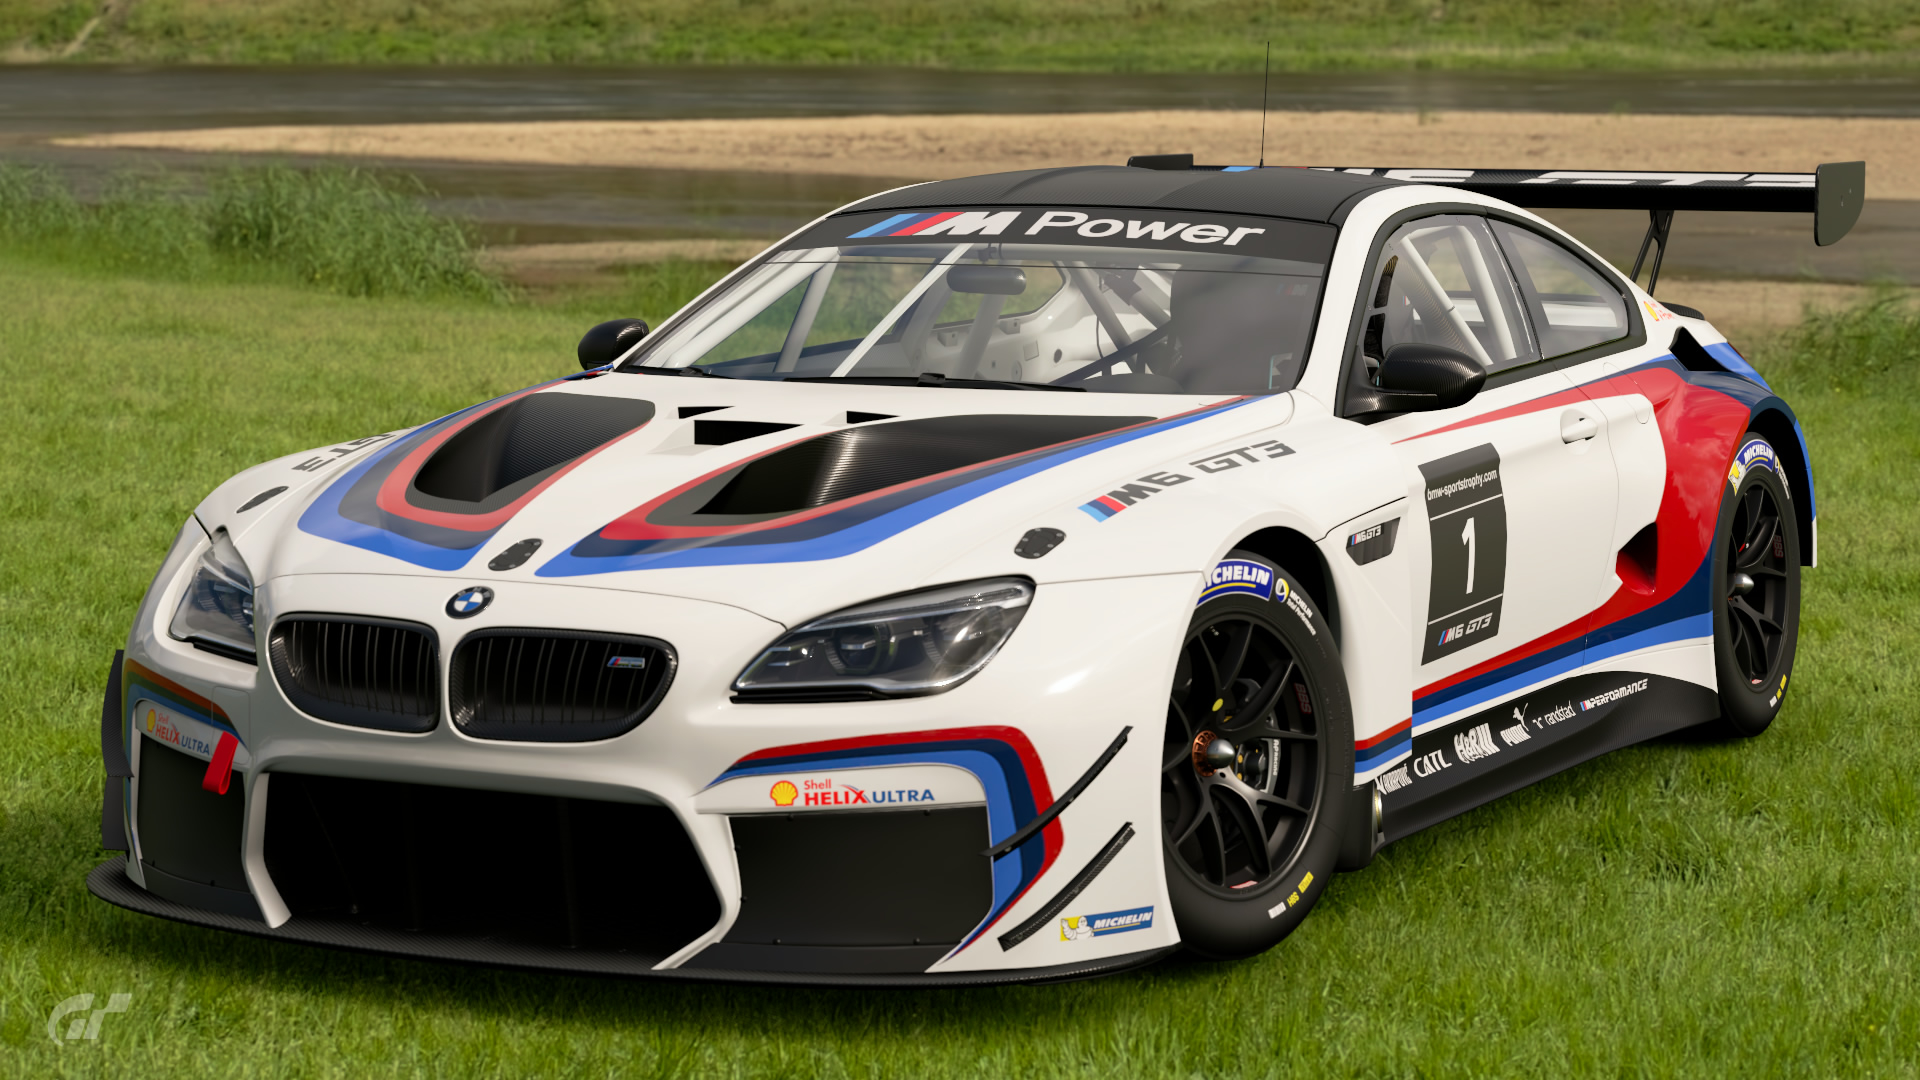 bmw m6 gt3 m power livery 39 16 gran turismo wiki fandom powered by wikia. Black Bedroom Furniture Sets. Home Design Ideas